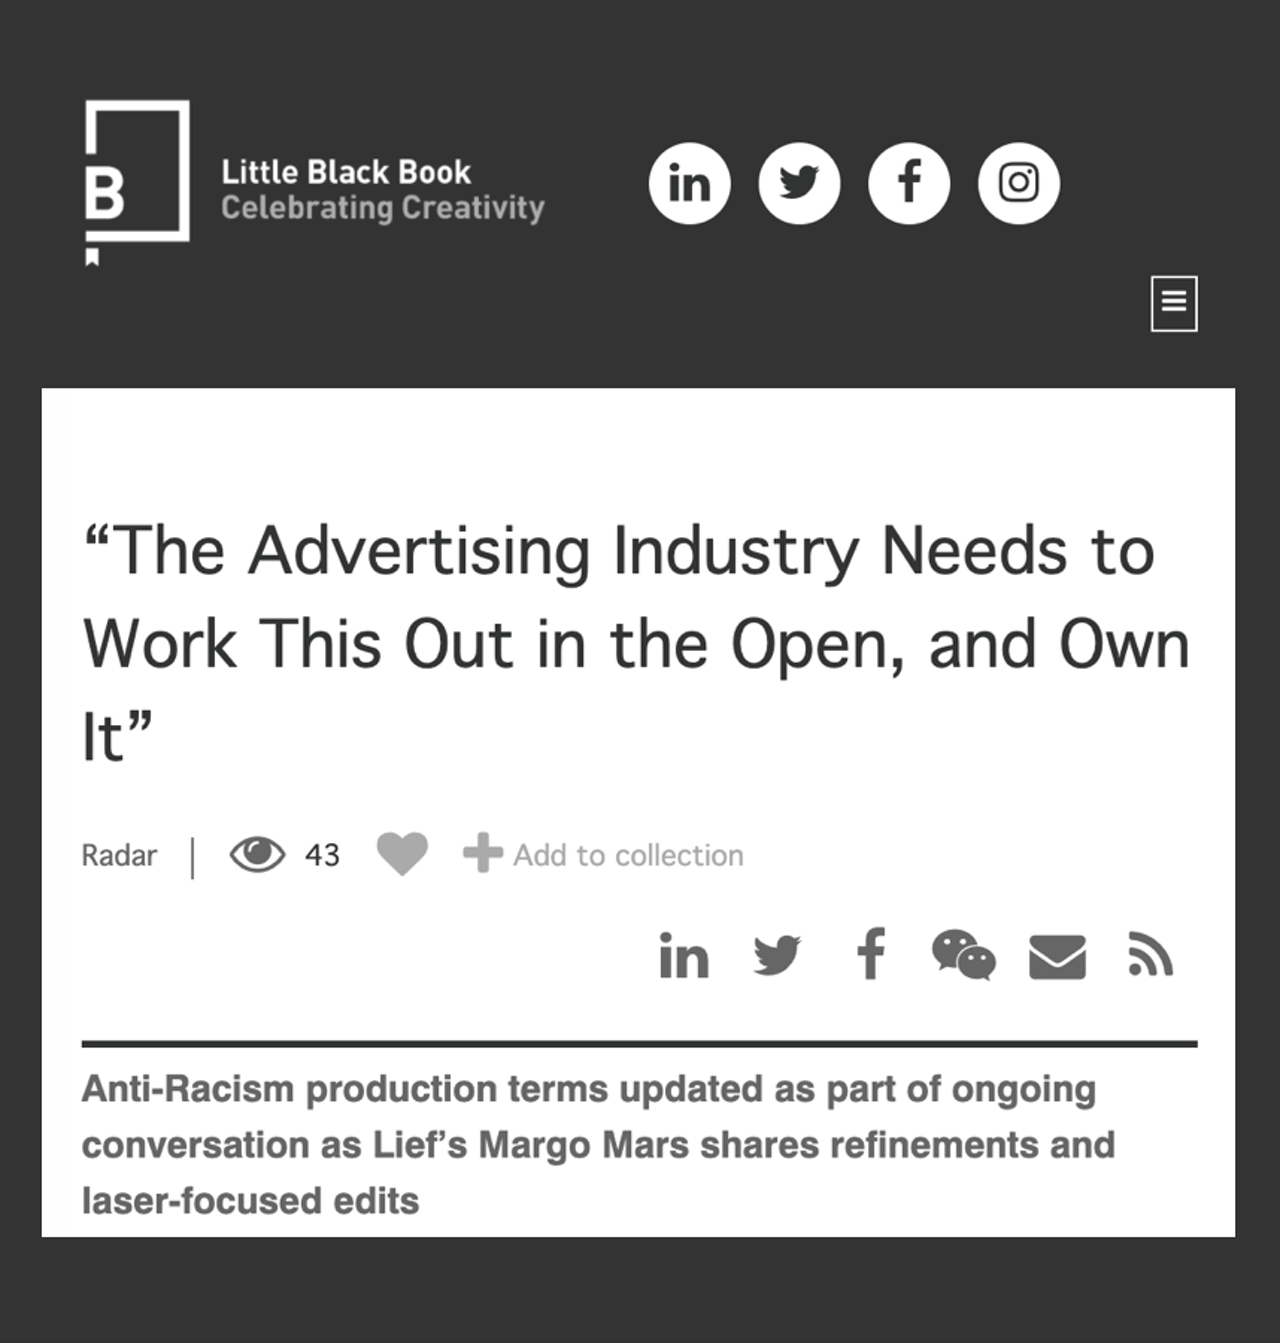 Read our refined terms in an open letter on the subject of systemic racism in the Advertising Industry.